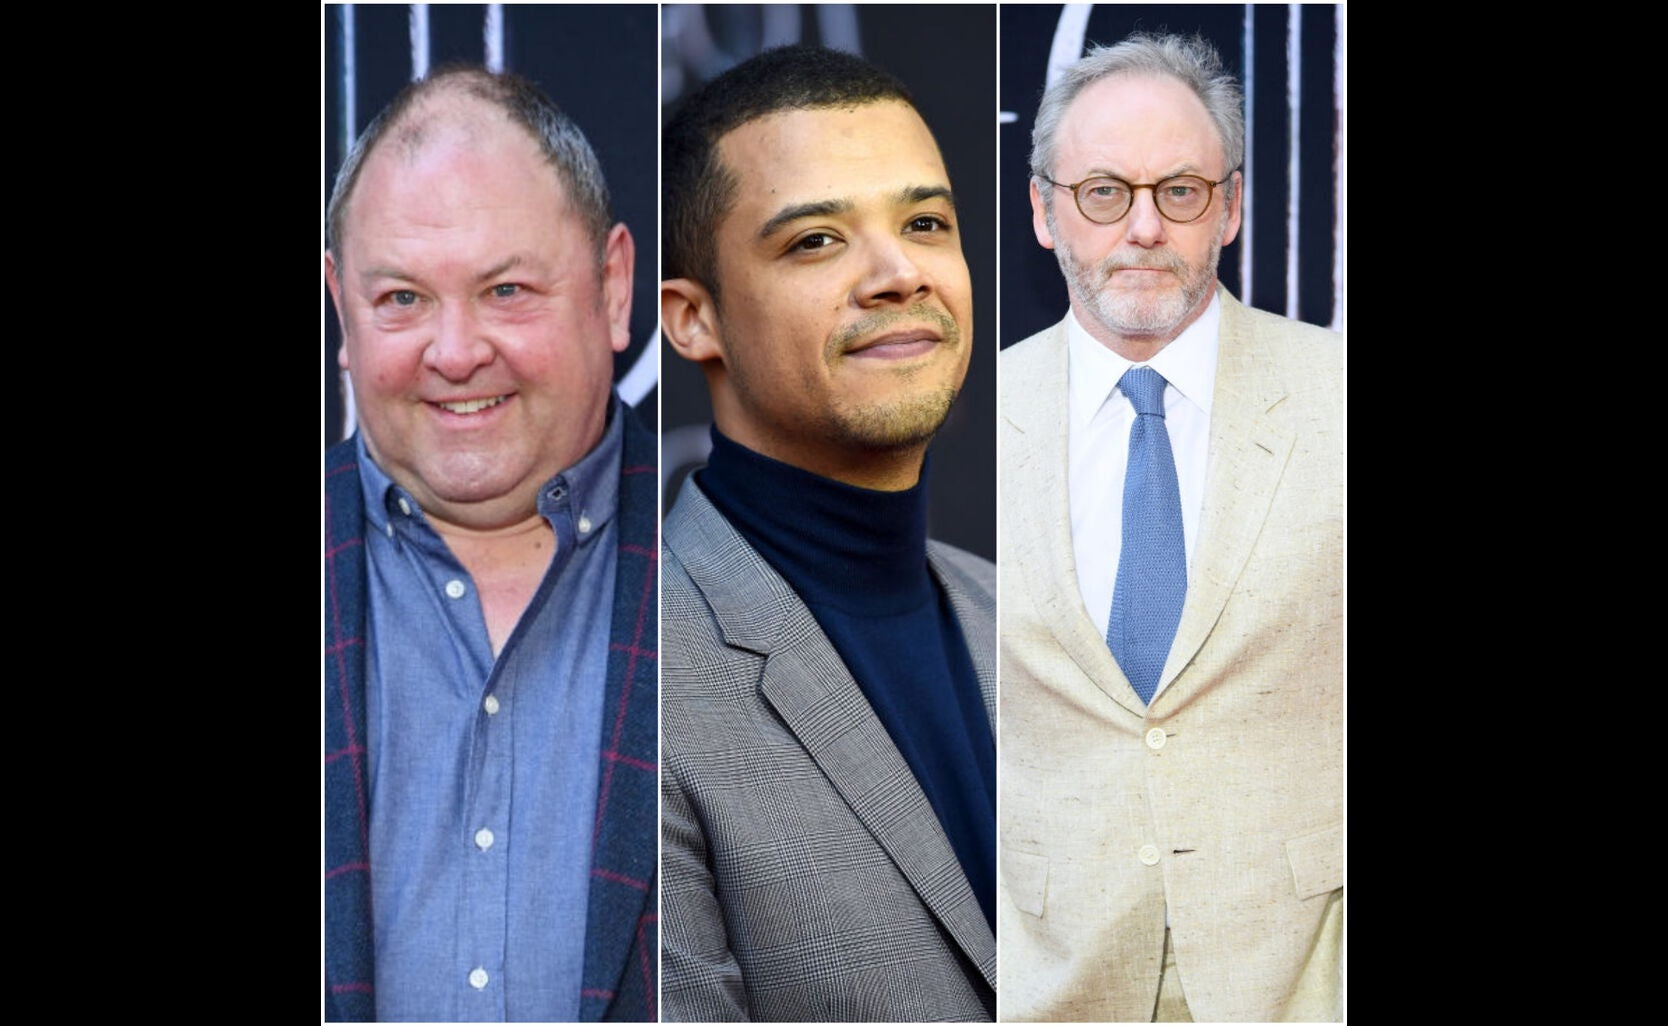 Mark Addy, Jacob Anderson, and Liam Cunningham